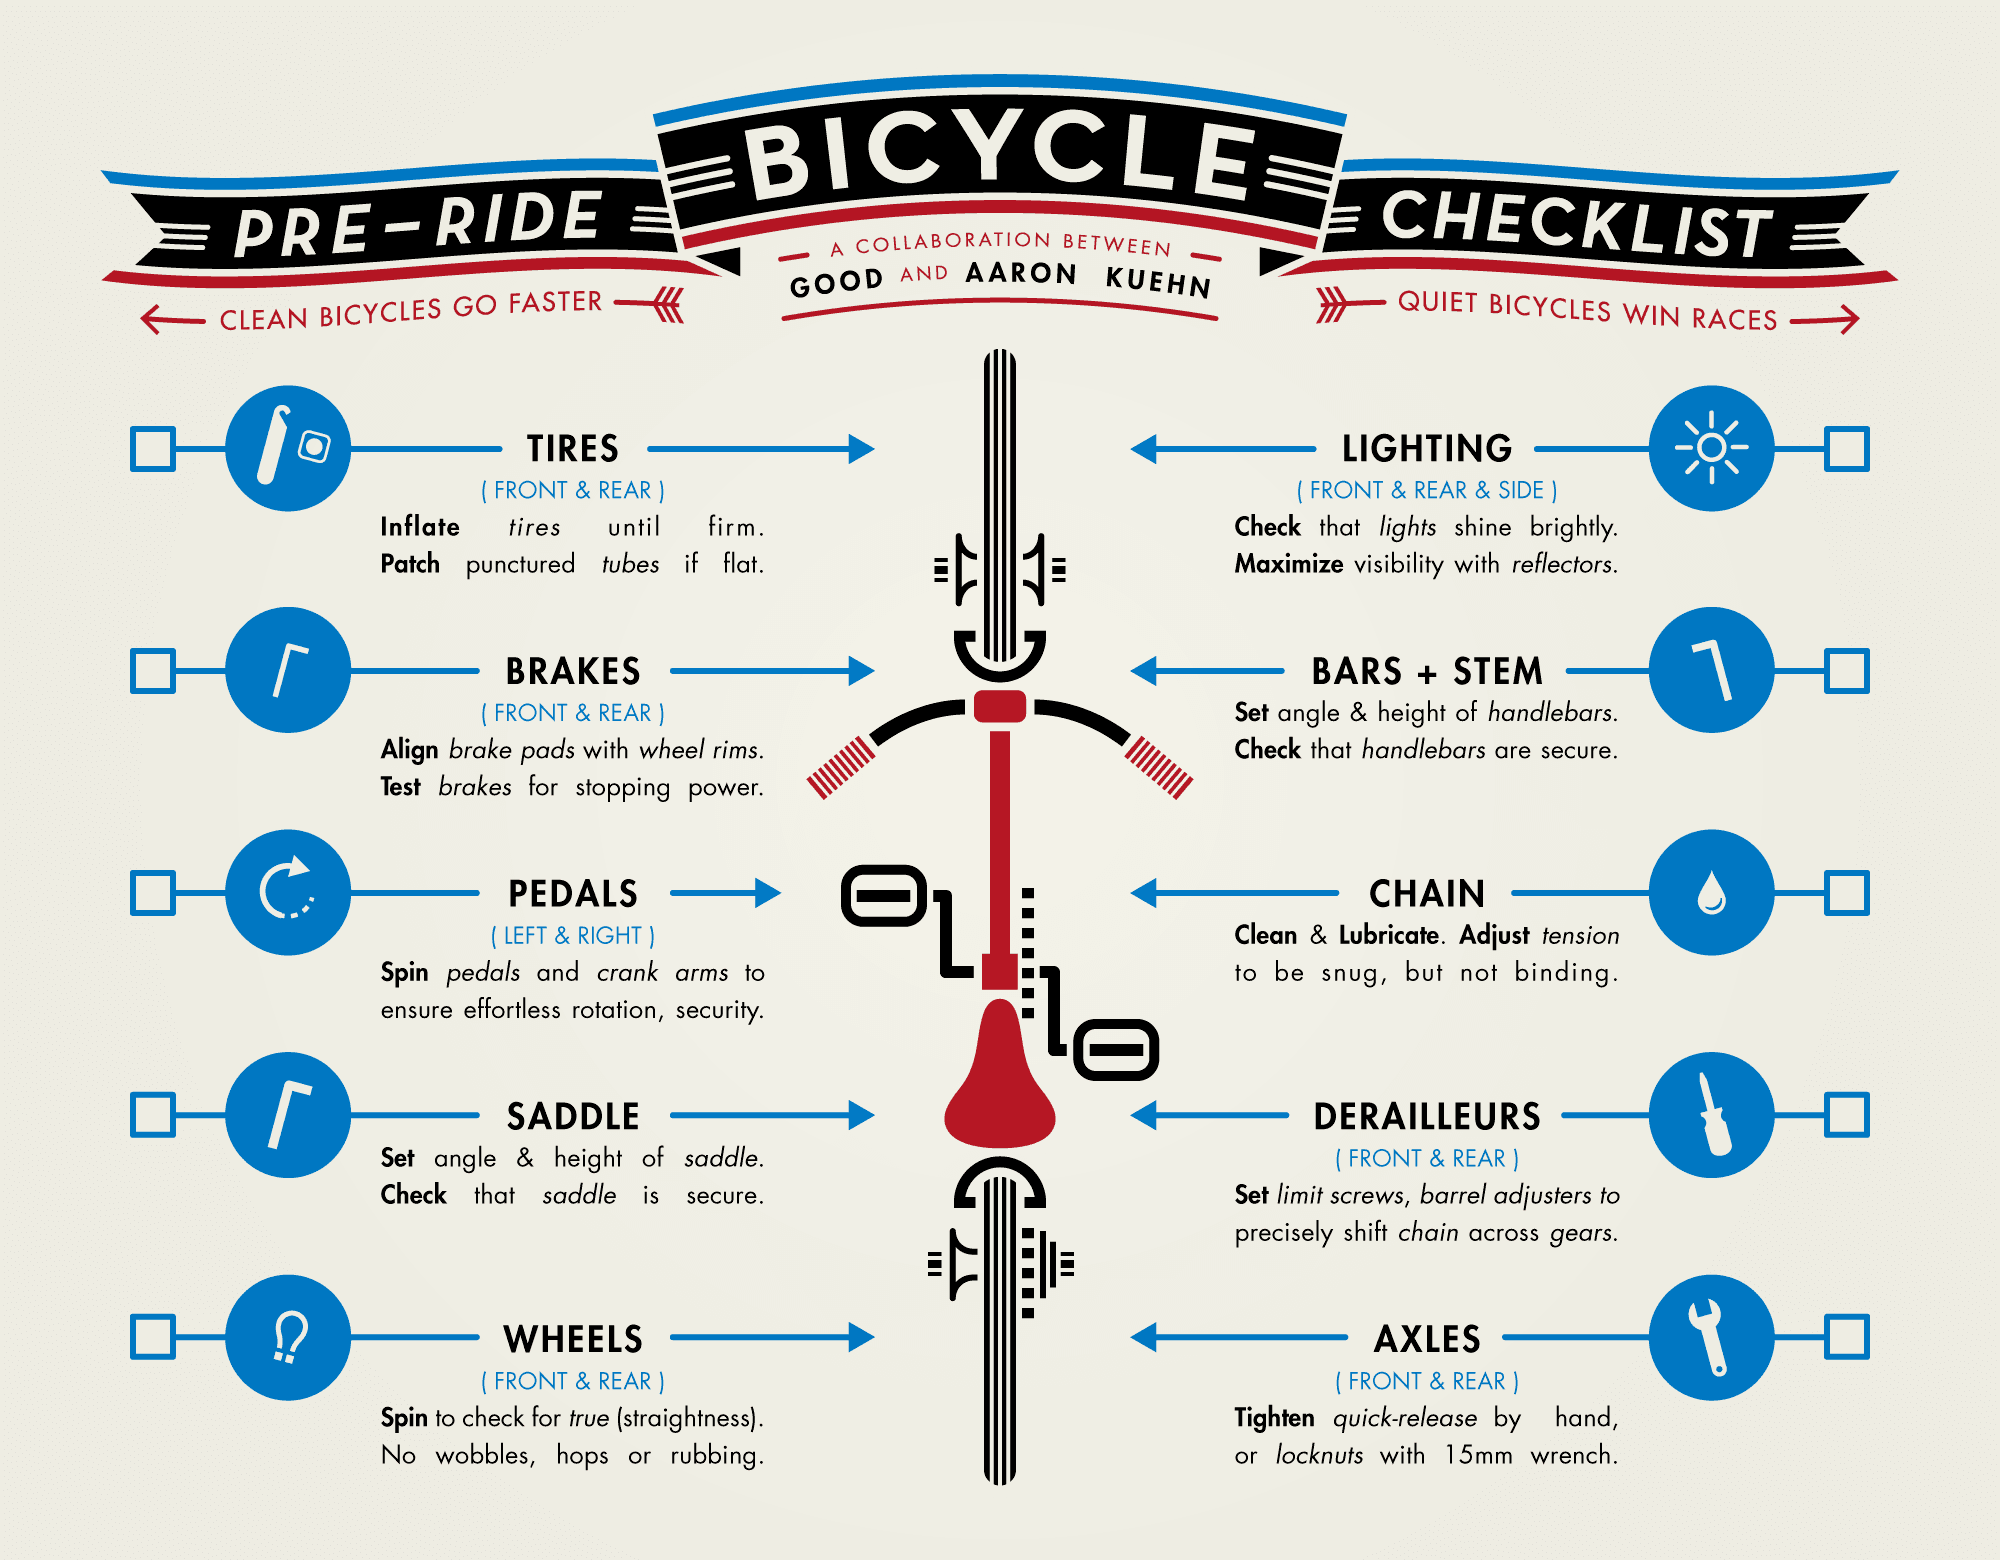 safe biking checklist